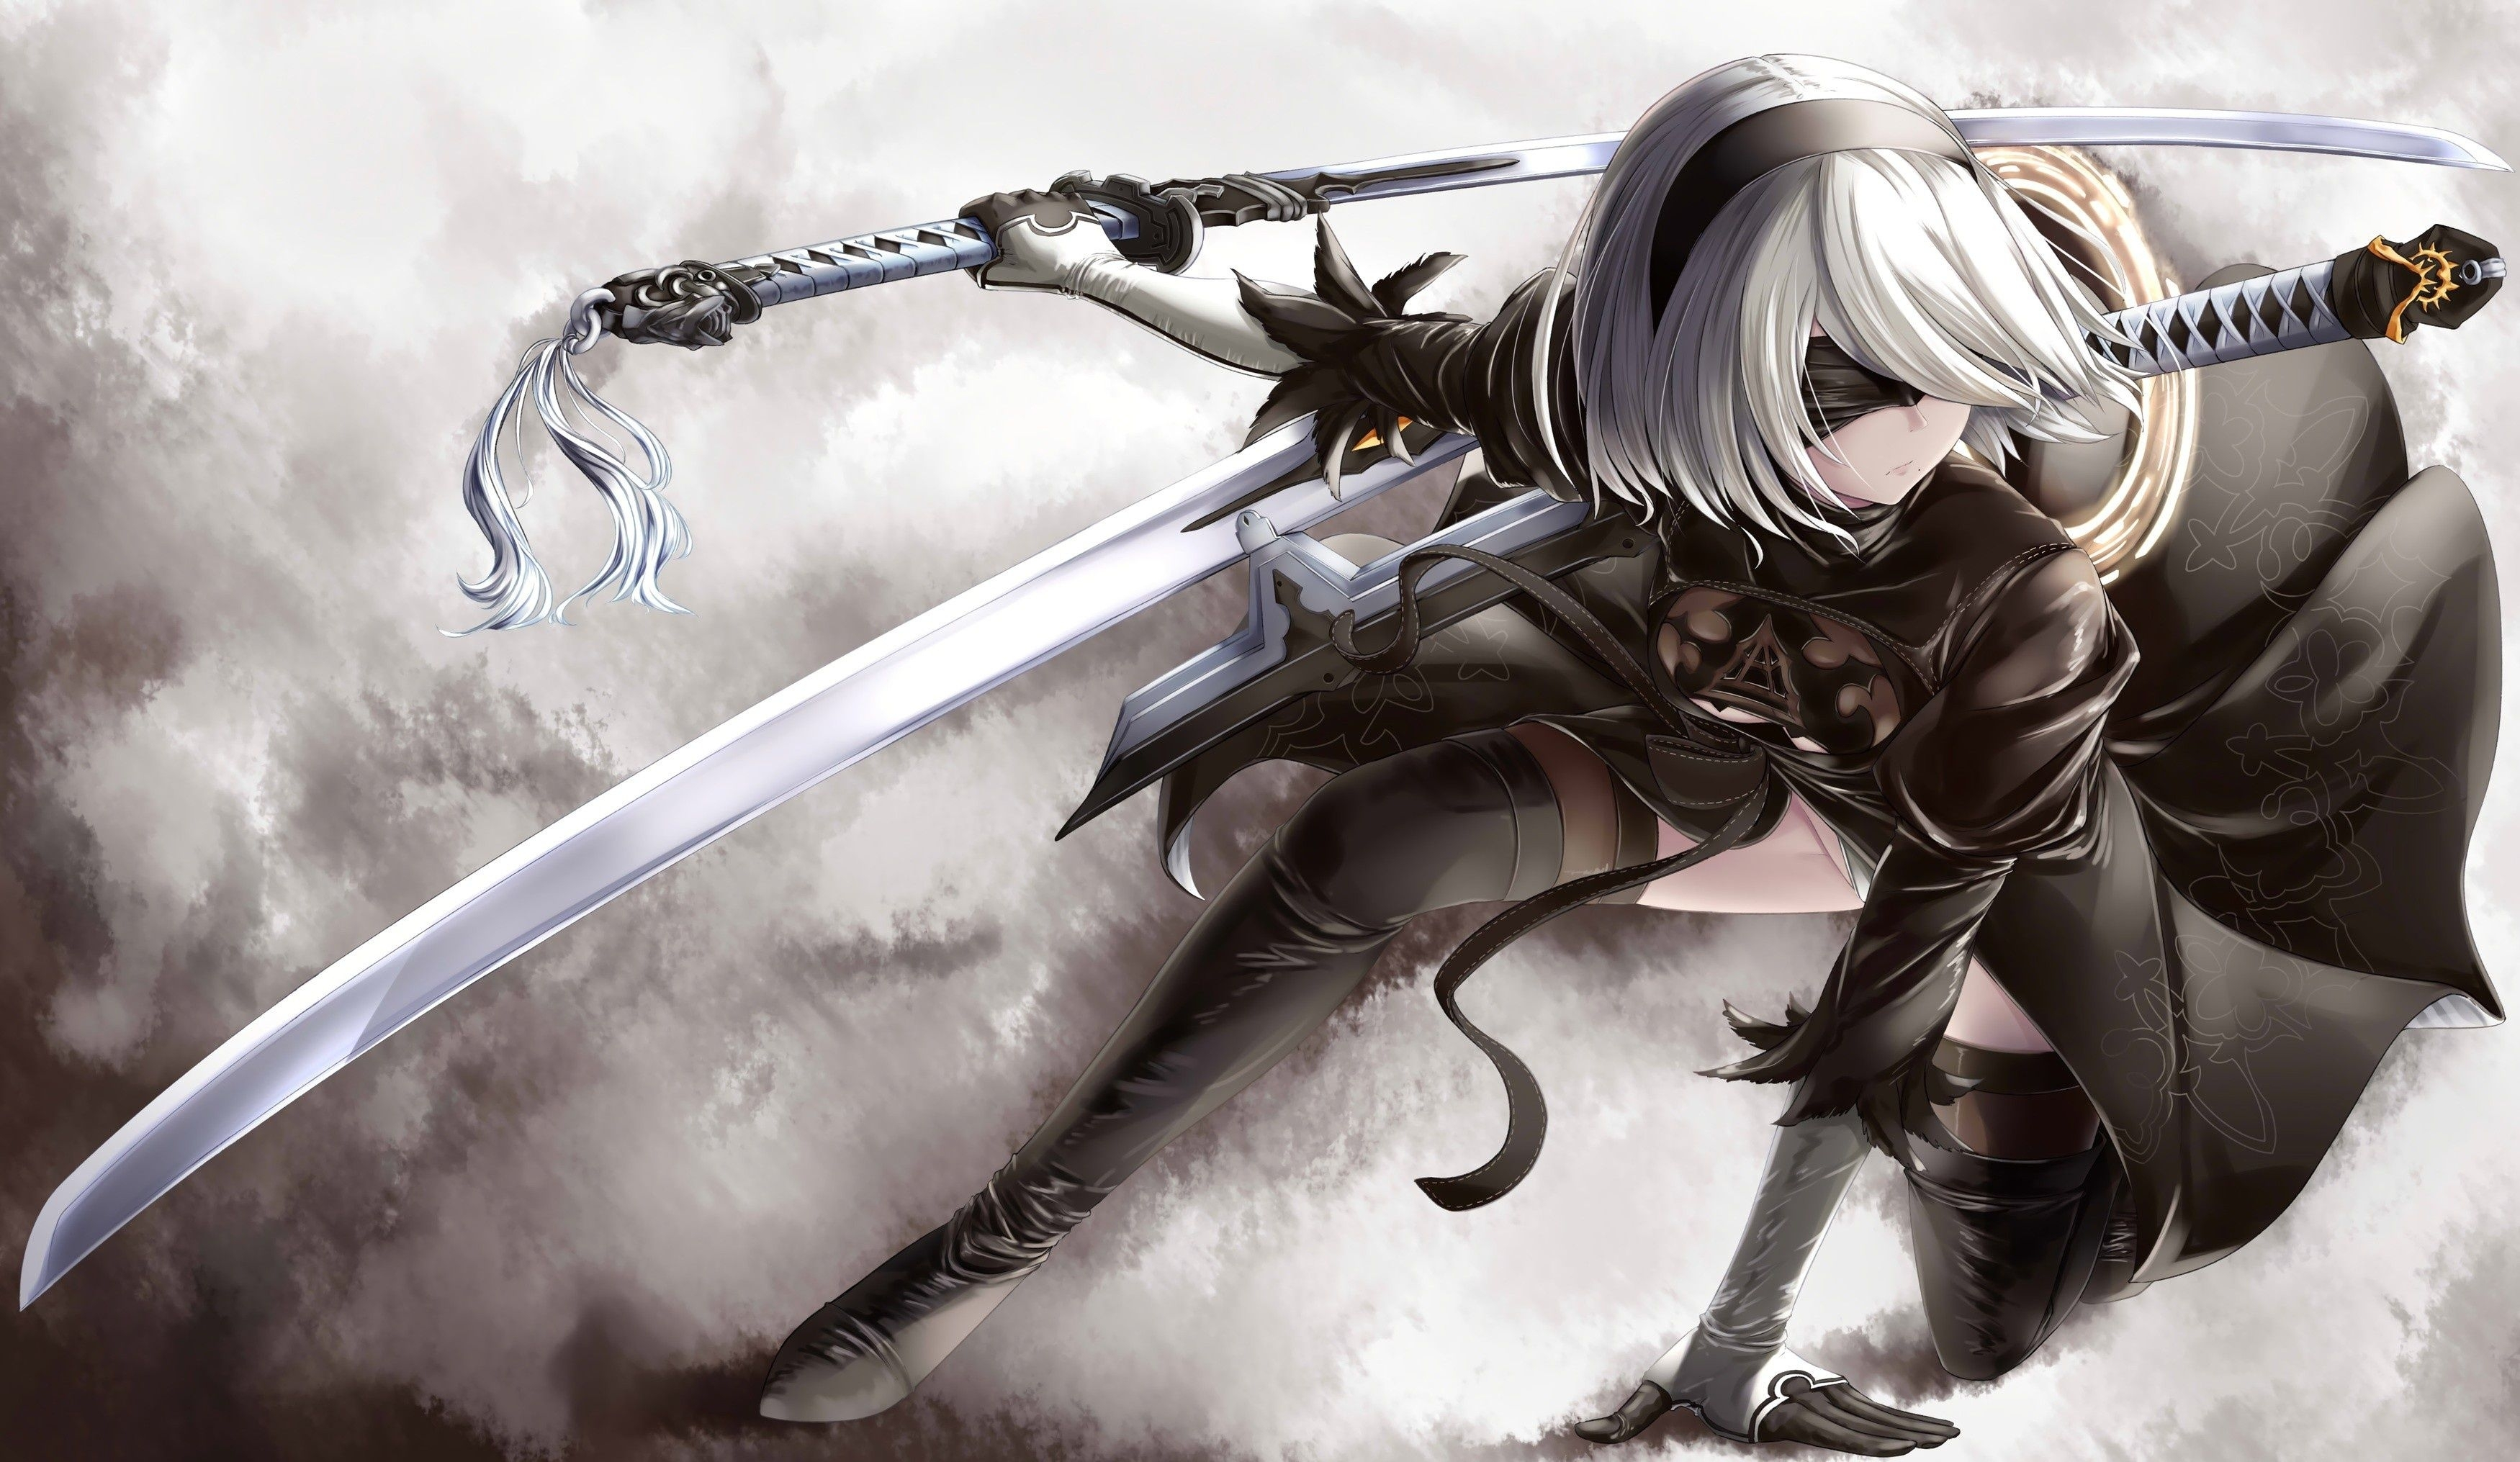 nier: automata wallpaper - wallpaper abyss | illustrations | pinterest